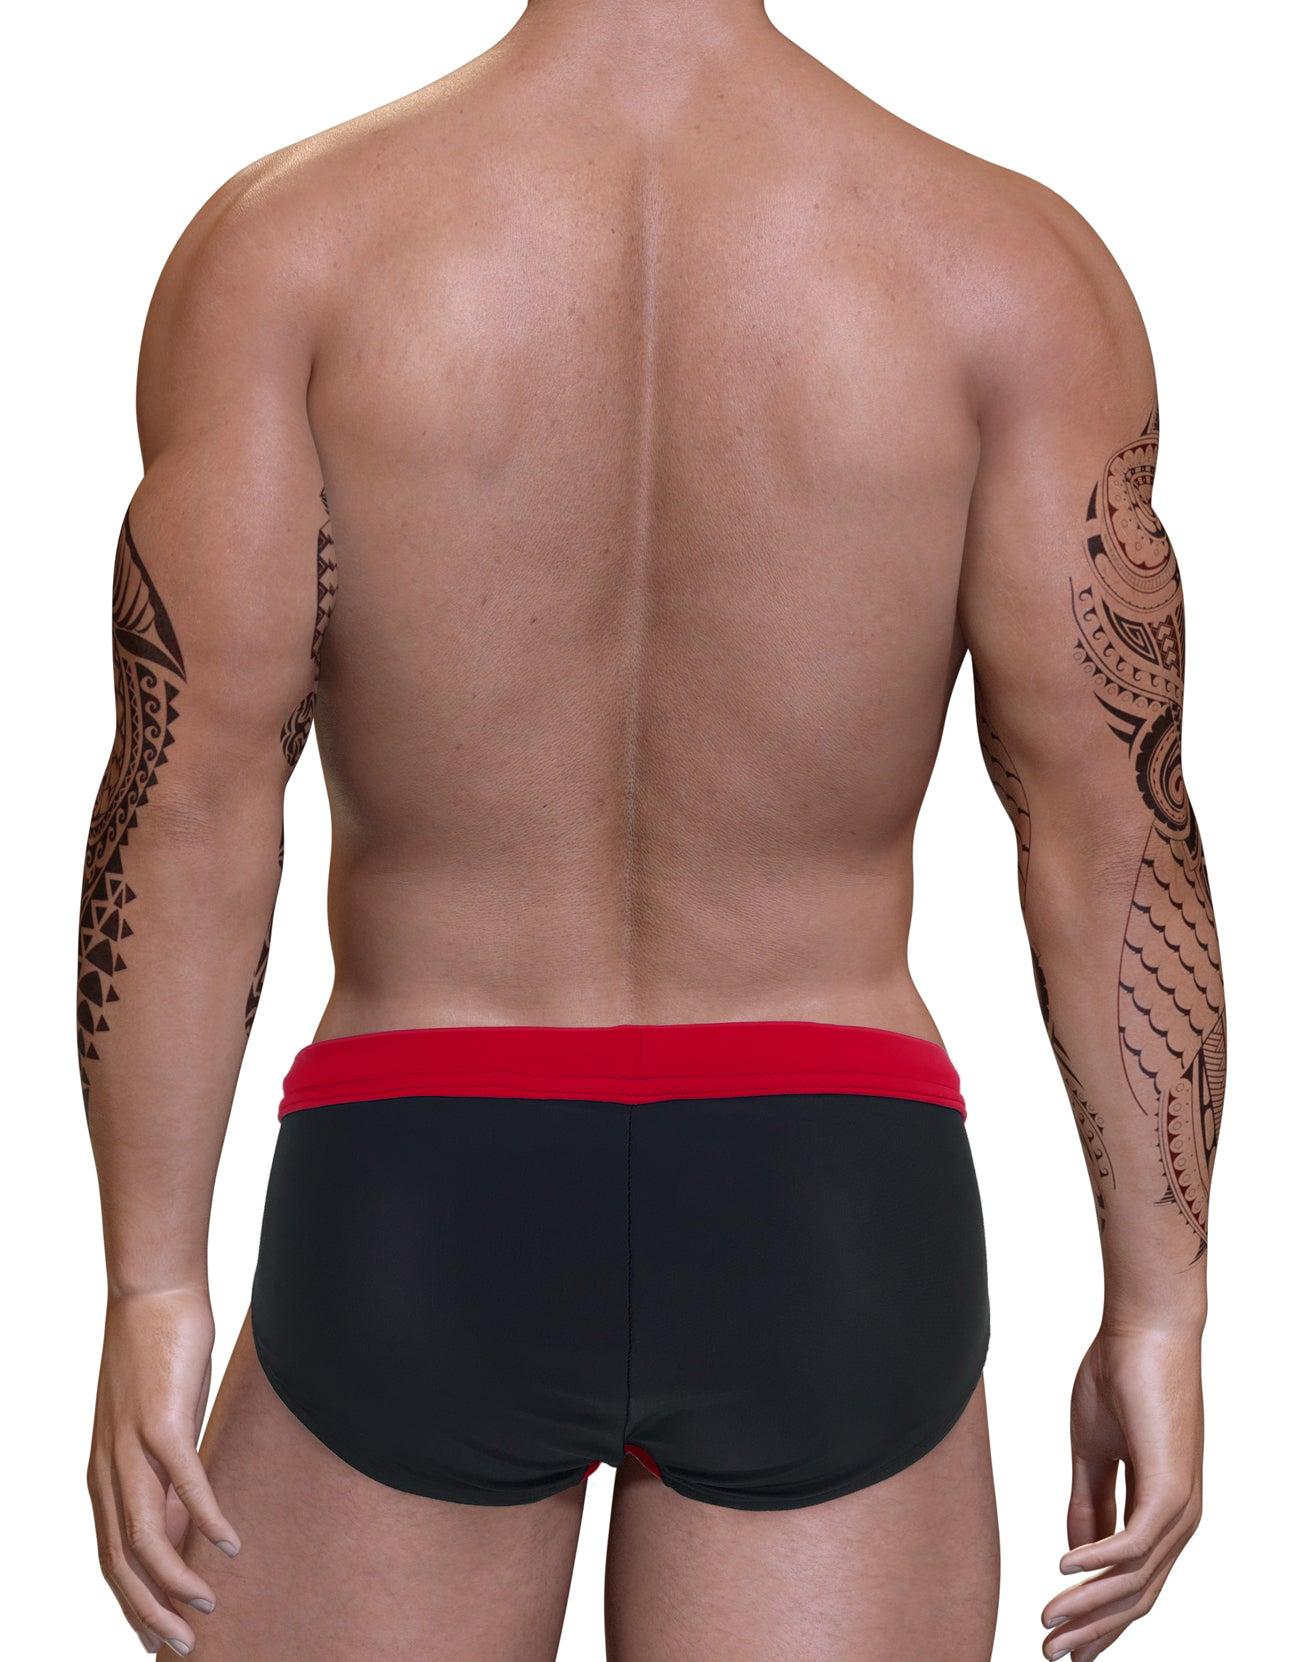 Big Boy Pouch Swim Bikini Red - Big Penis Underwear, WildmanT - WildmanT